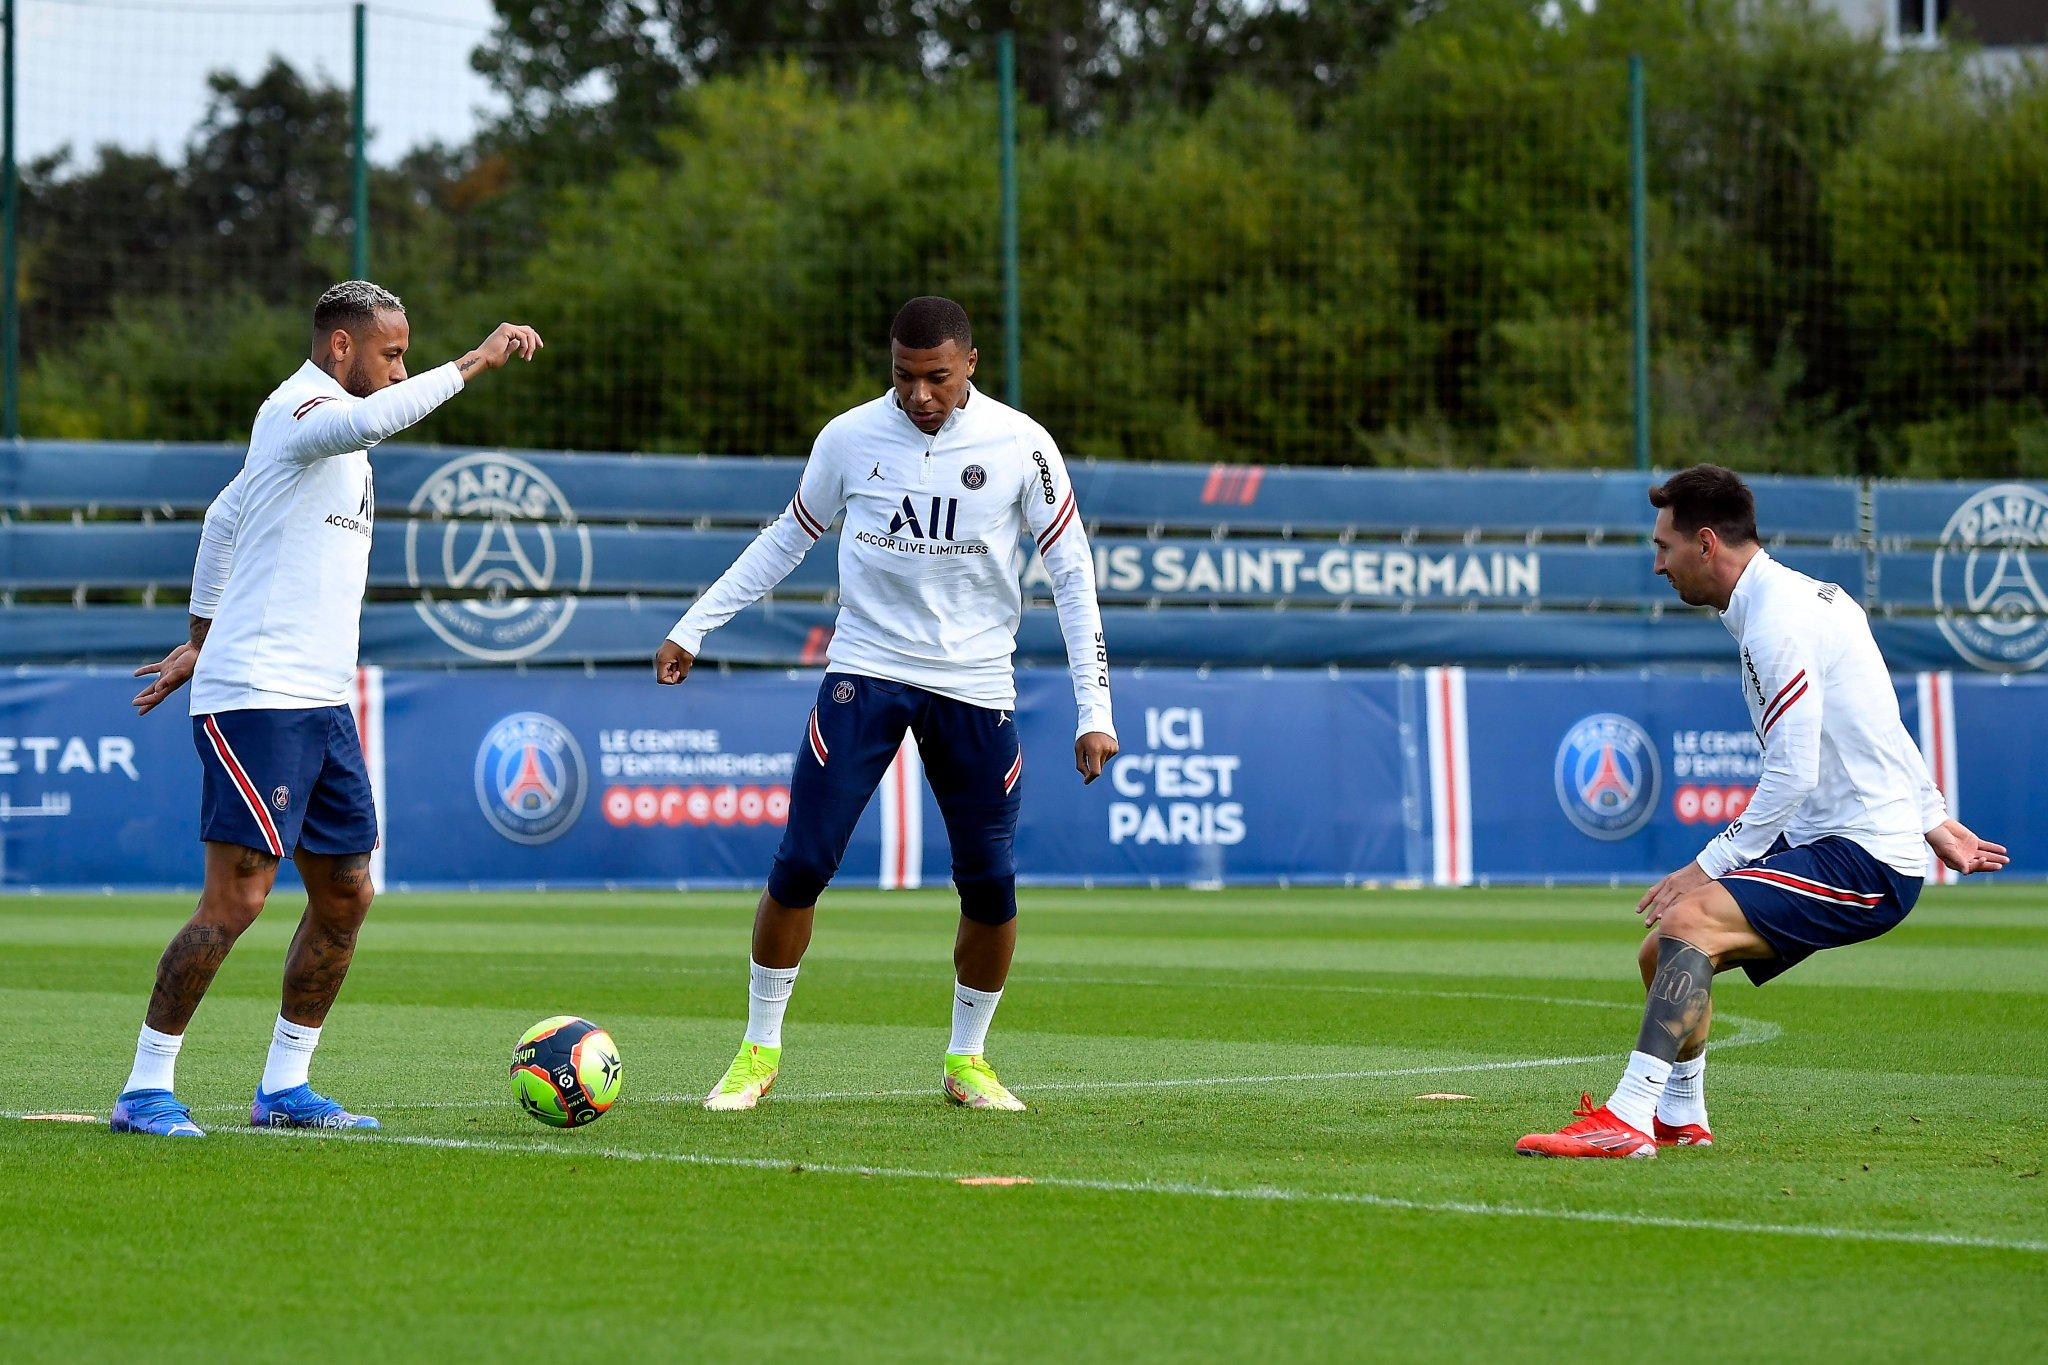 Beautiful pictures from PSG as Messi, Neymar and Mbappe train together